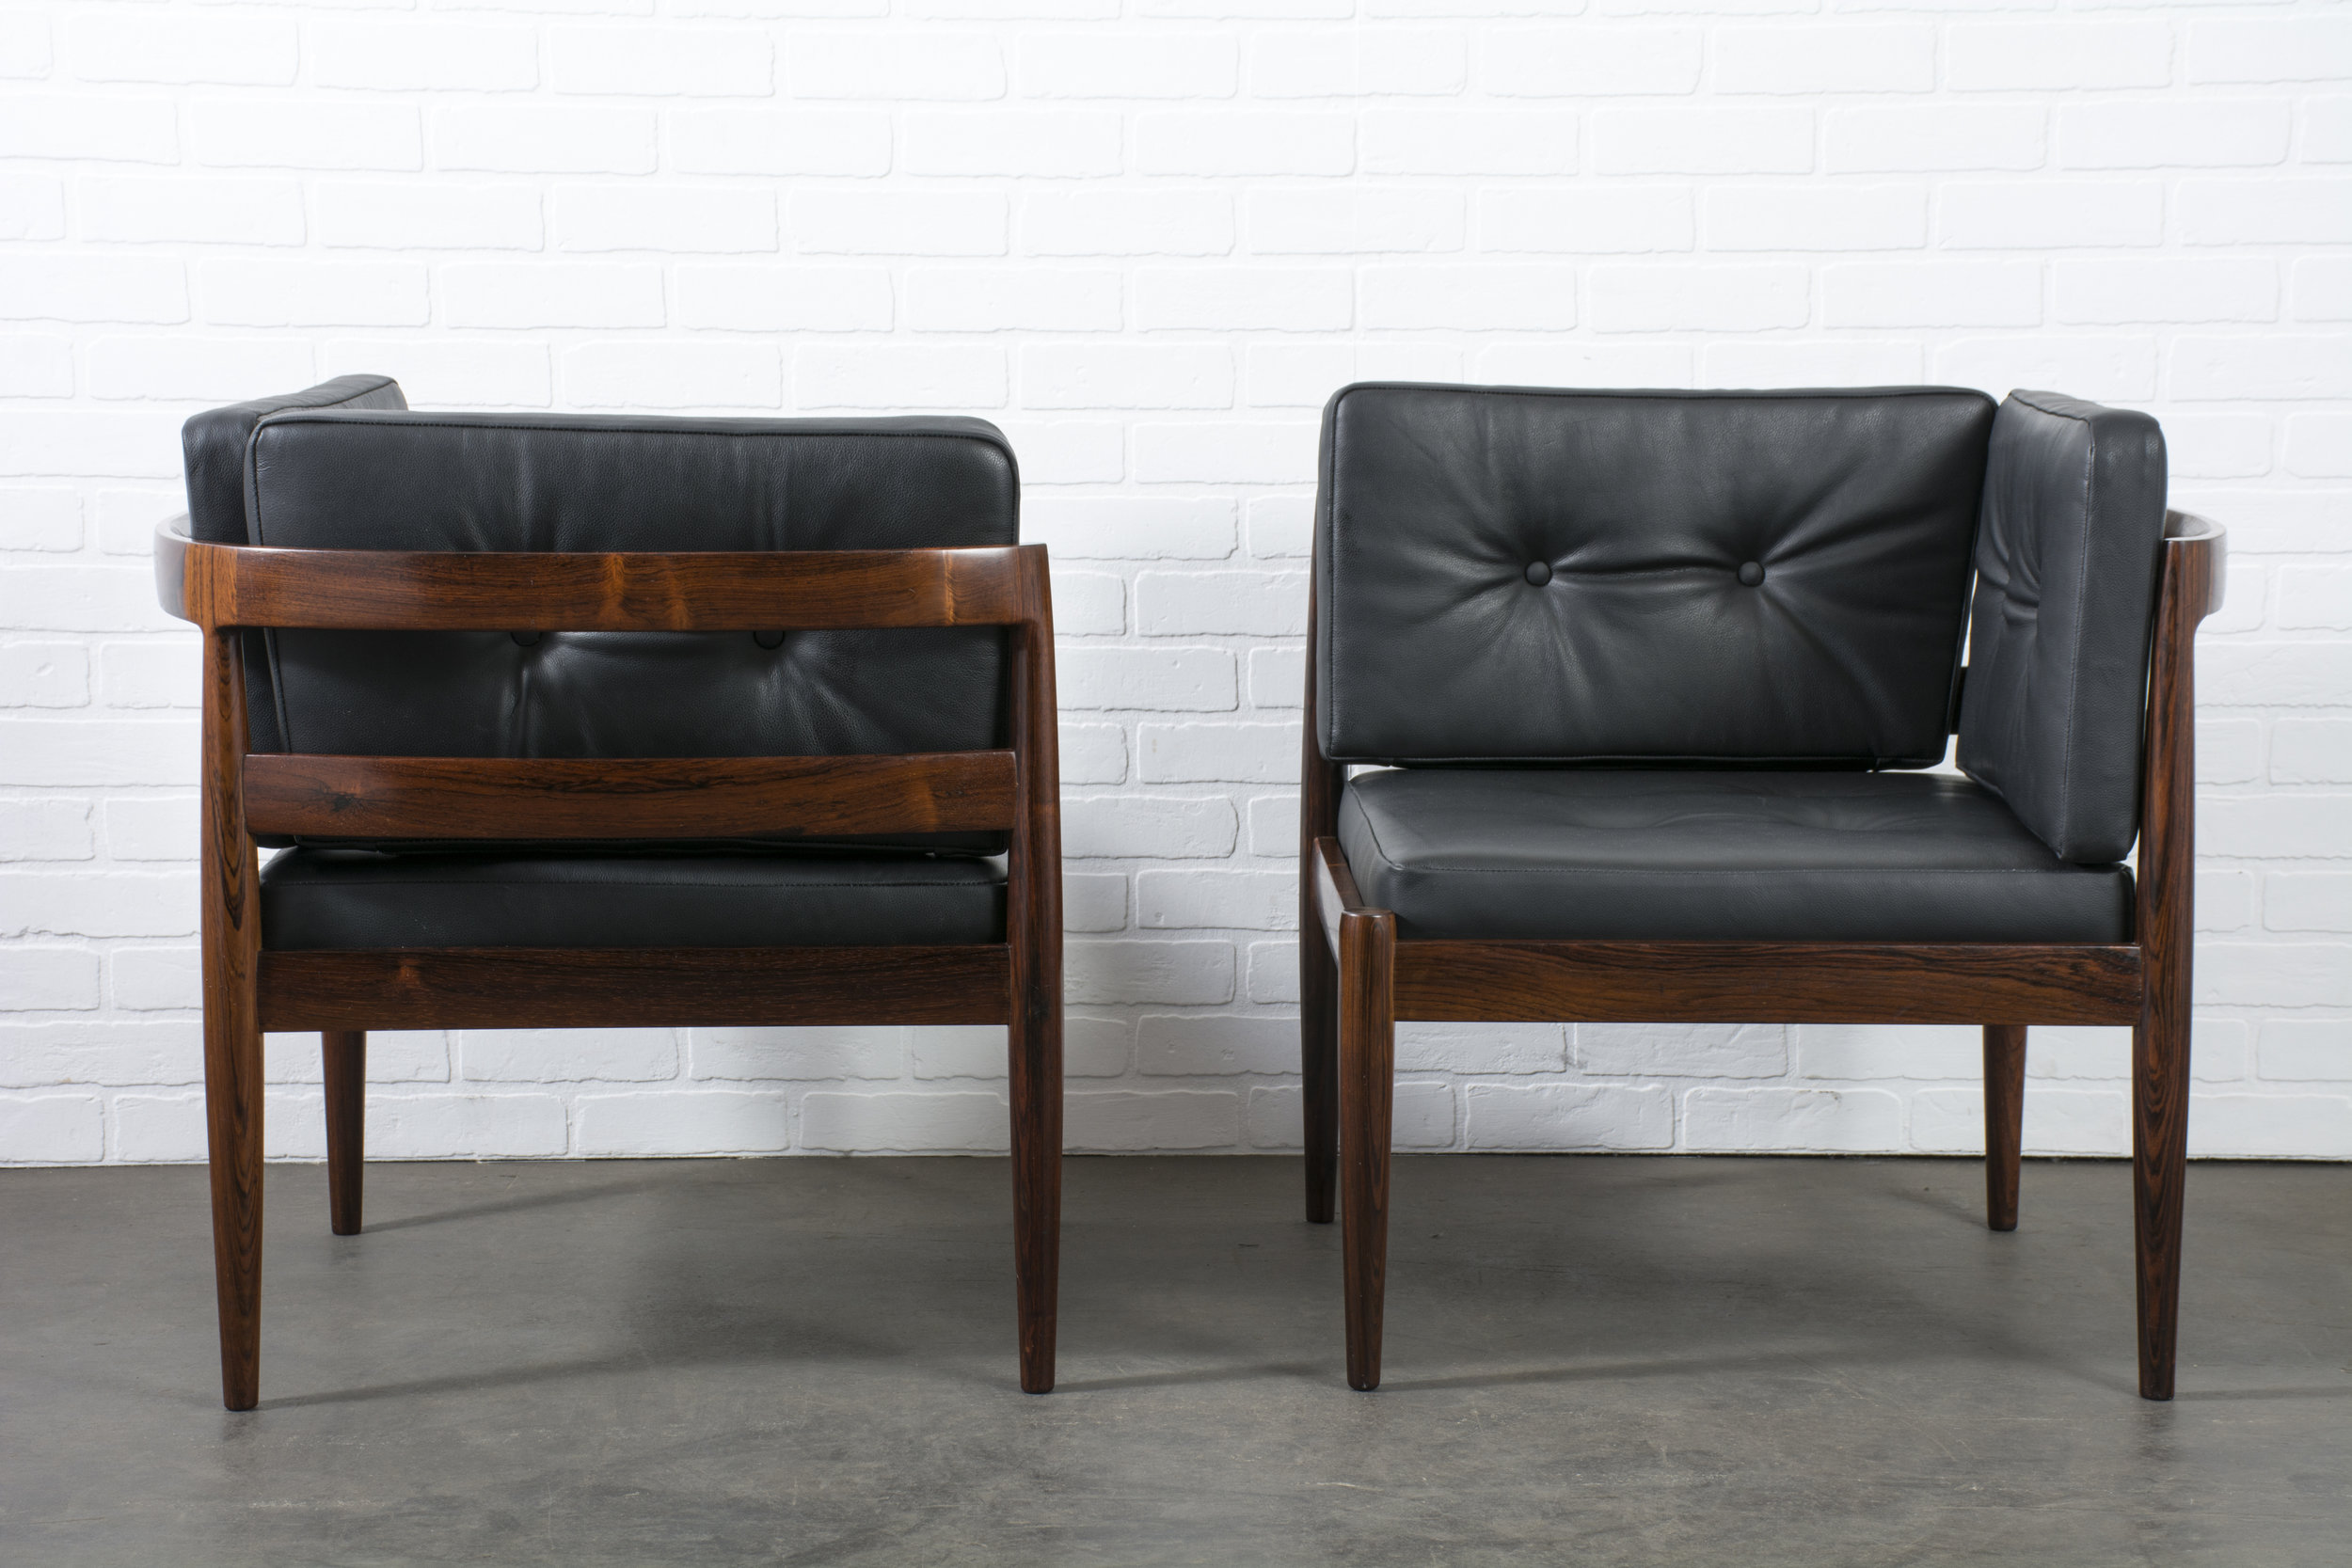 Kai Kristiansen Chairs in Rosewood and Leather